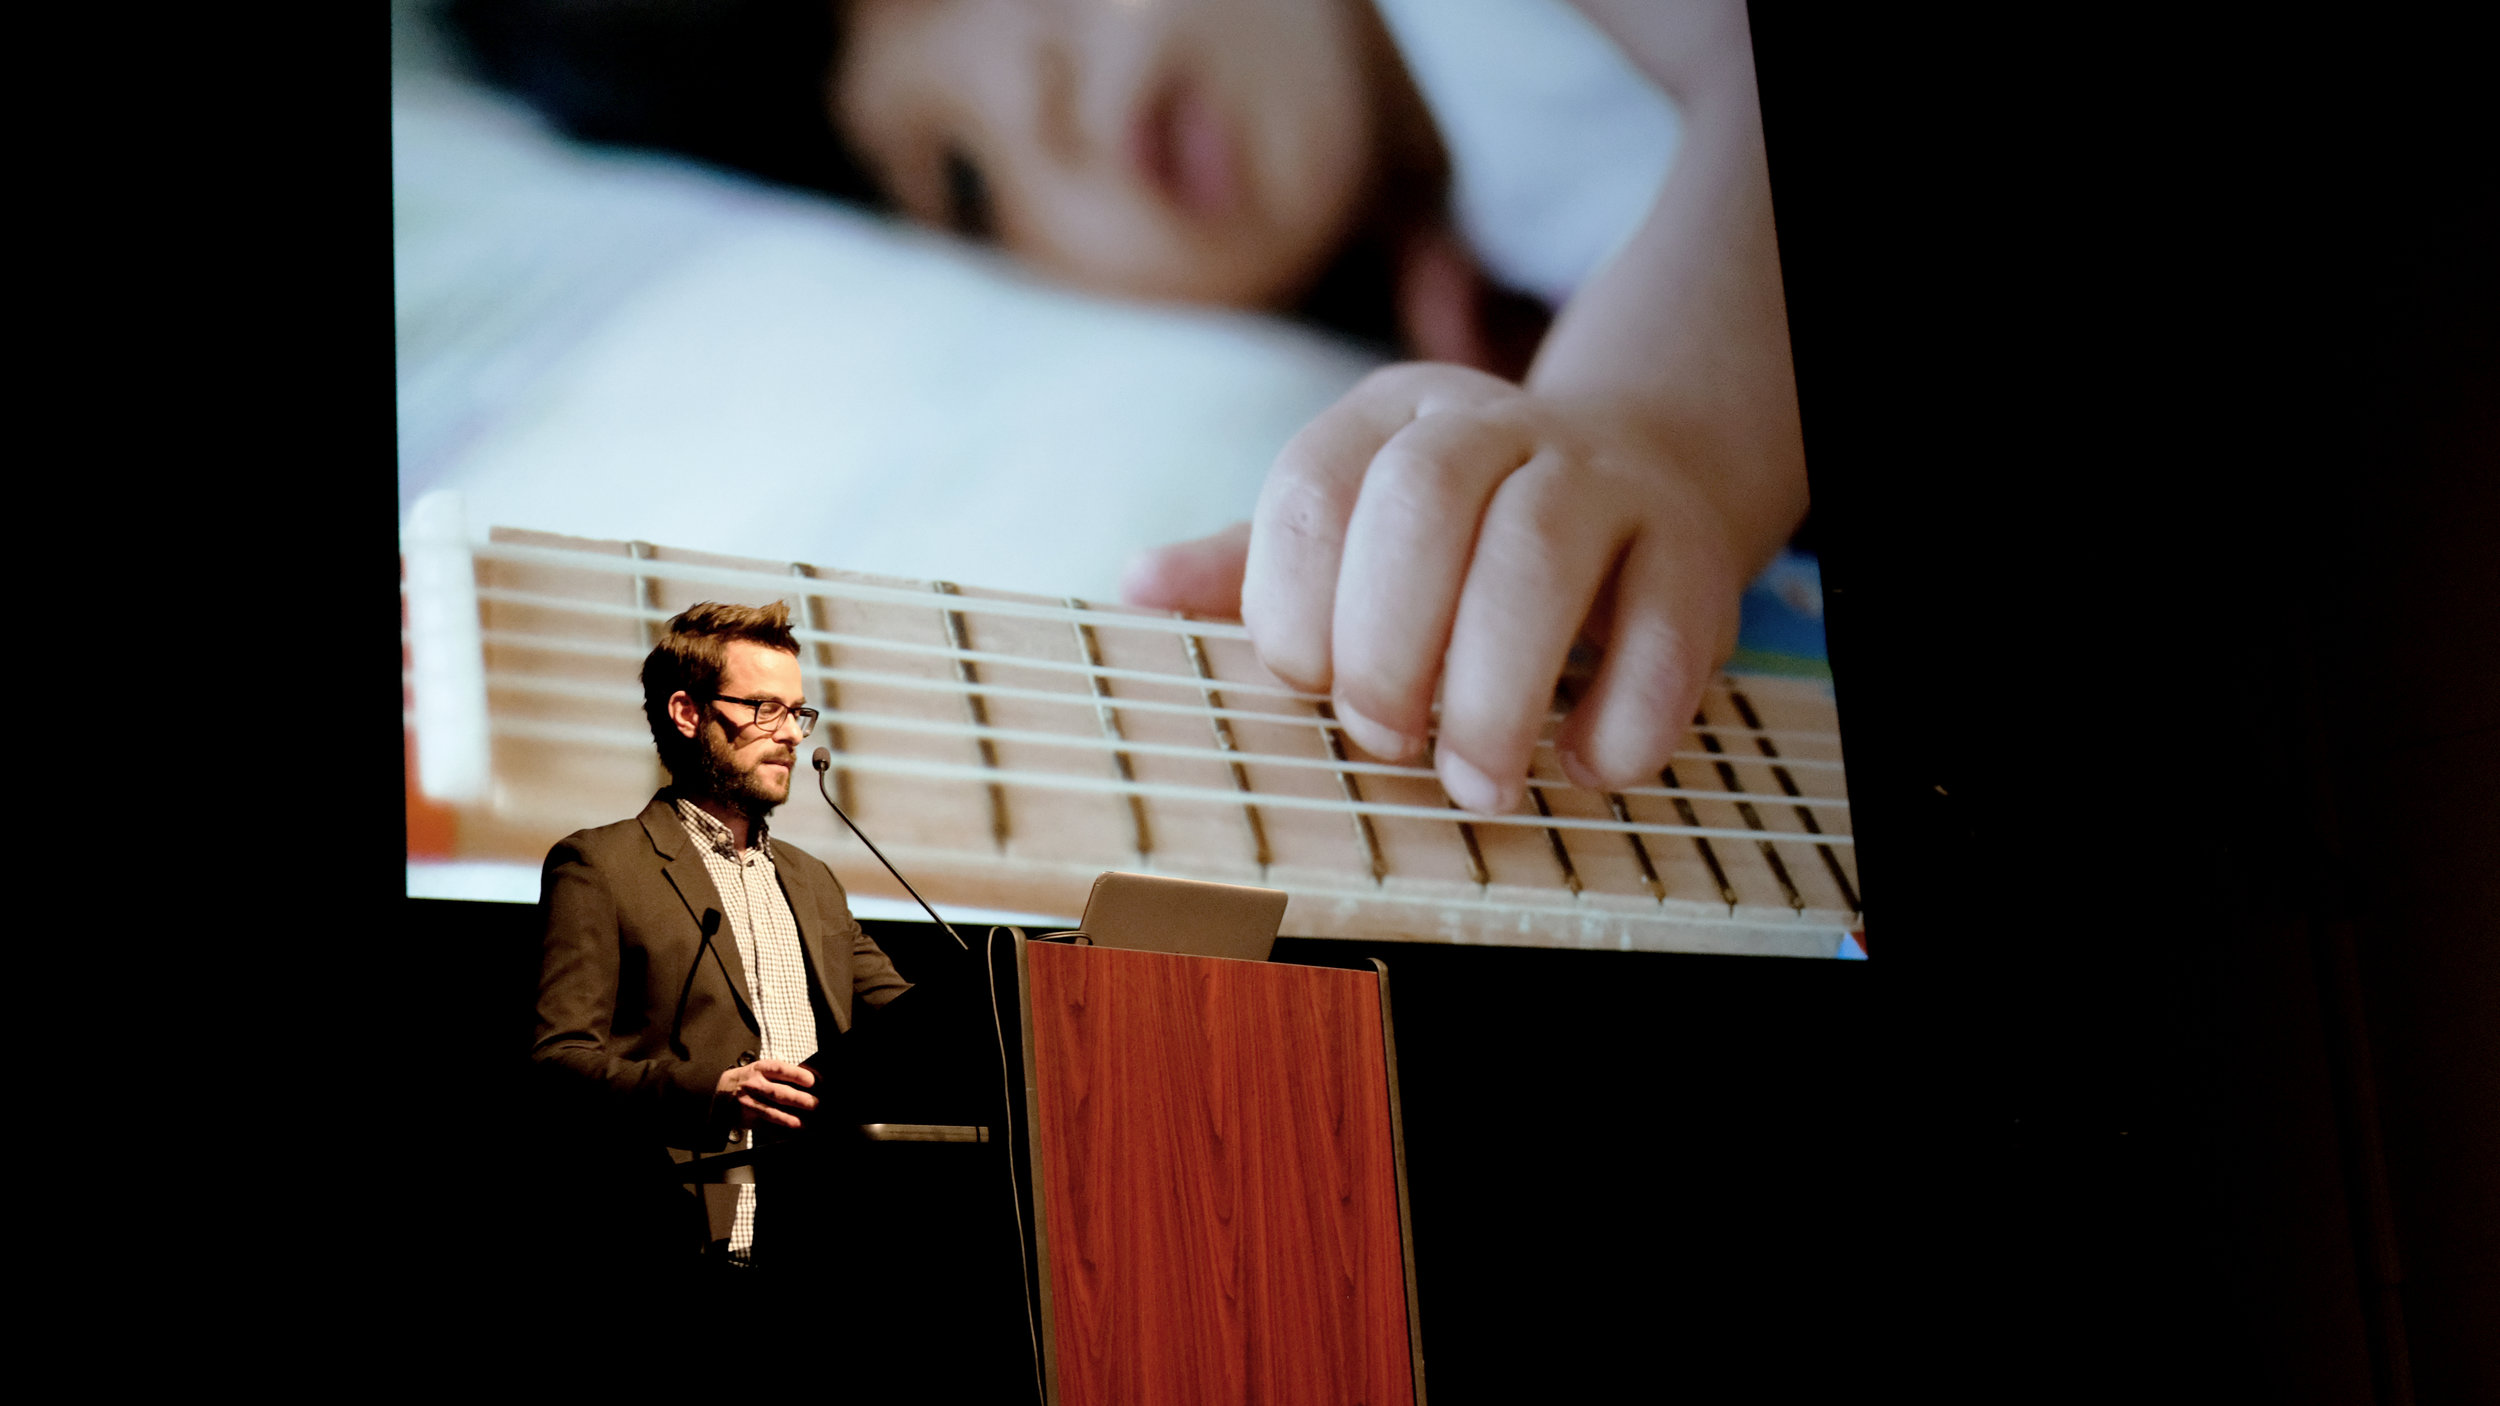 Sean Ahlquist, Assistant Professor of Architecture at the Taubman College of Architecture and Urban Planning, shared his work on Social Sensory Architectures with students, faculty, and guests at Kresge Theatre on Monday, 19 February 2018.   Photo by Christina Brown.